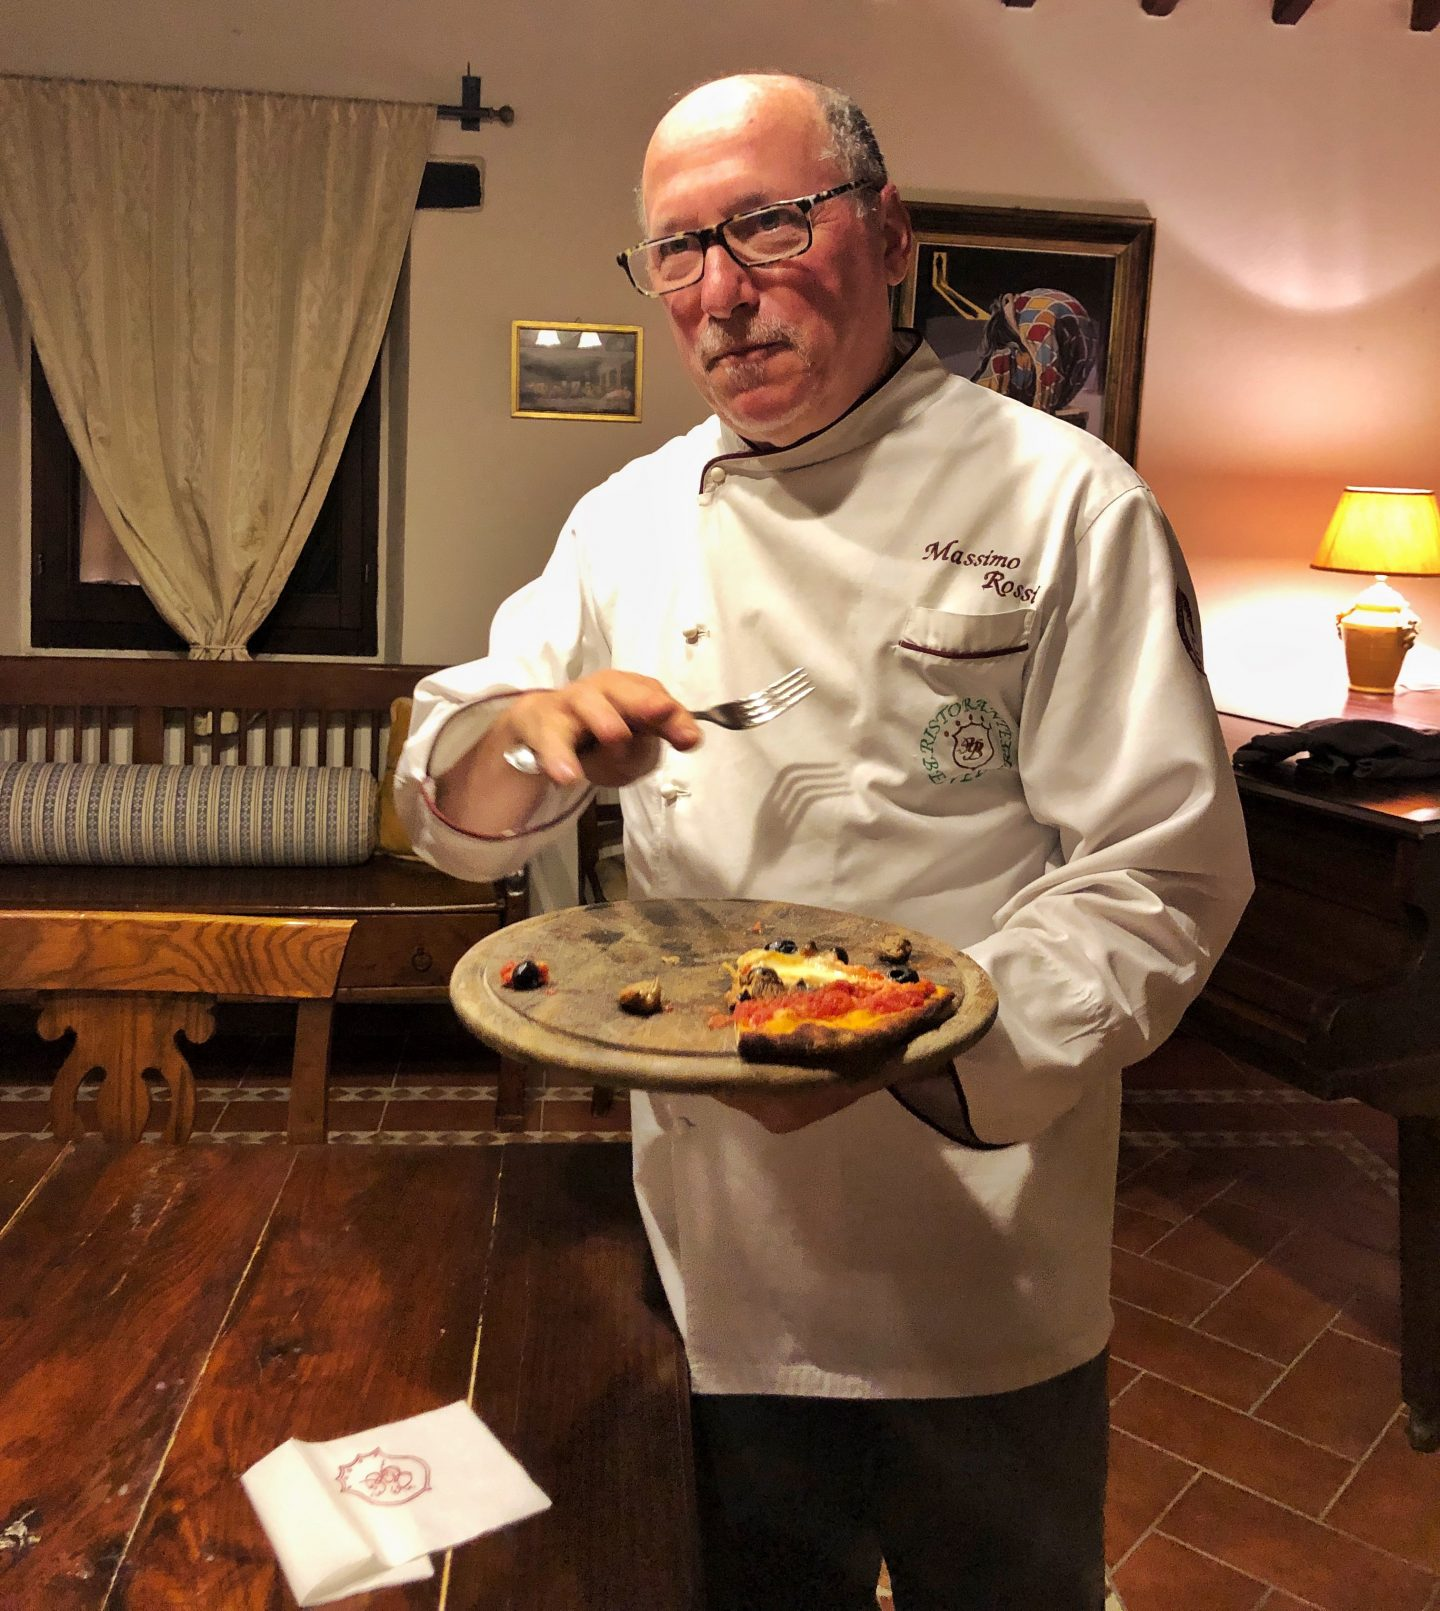 On a recent press trip courtesy of Bookings for You, we had pizzas cook for us by lovely Chef Massimo, featured in this photos, holding a wooden board and wearing smart chef whites with his name on.